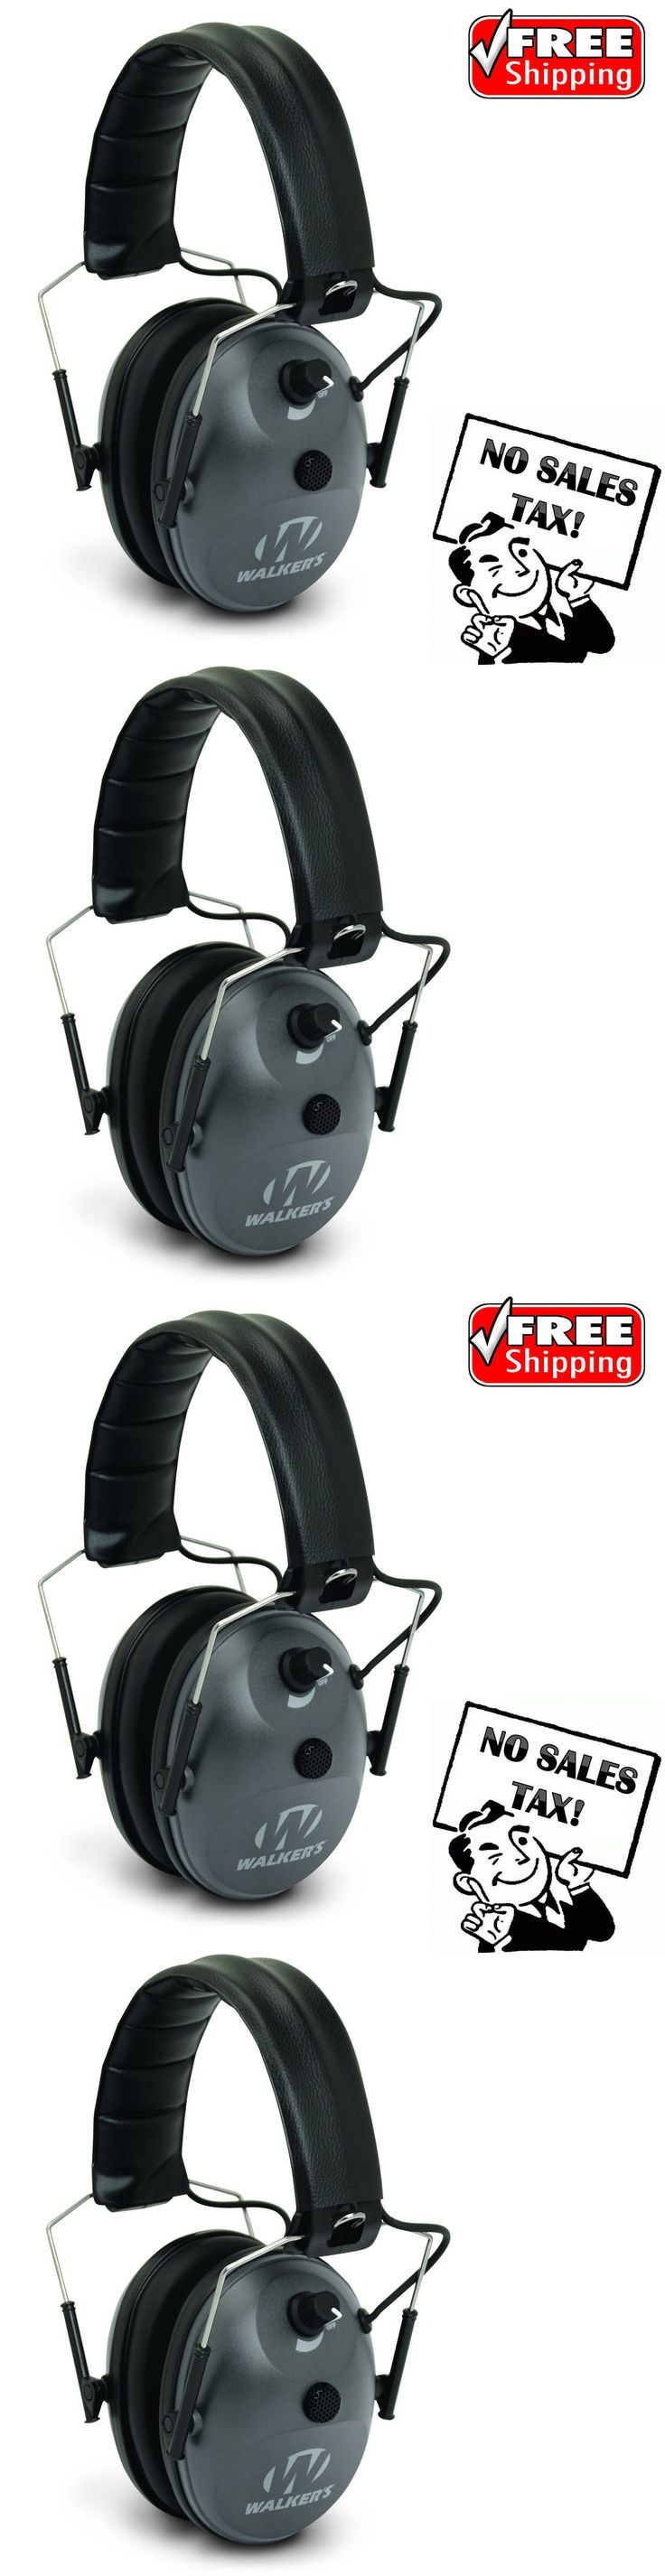 Hearing Protection 73942: Electronic Ear Muffs Hearing Noise Protection Shooting Hunting Gun Range Muff -> BUY IT NOW ONLY: $34.61 on eBay!